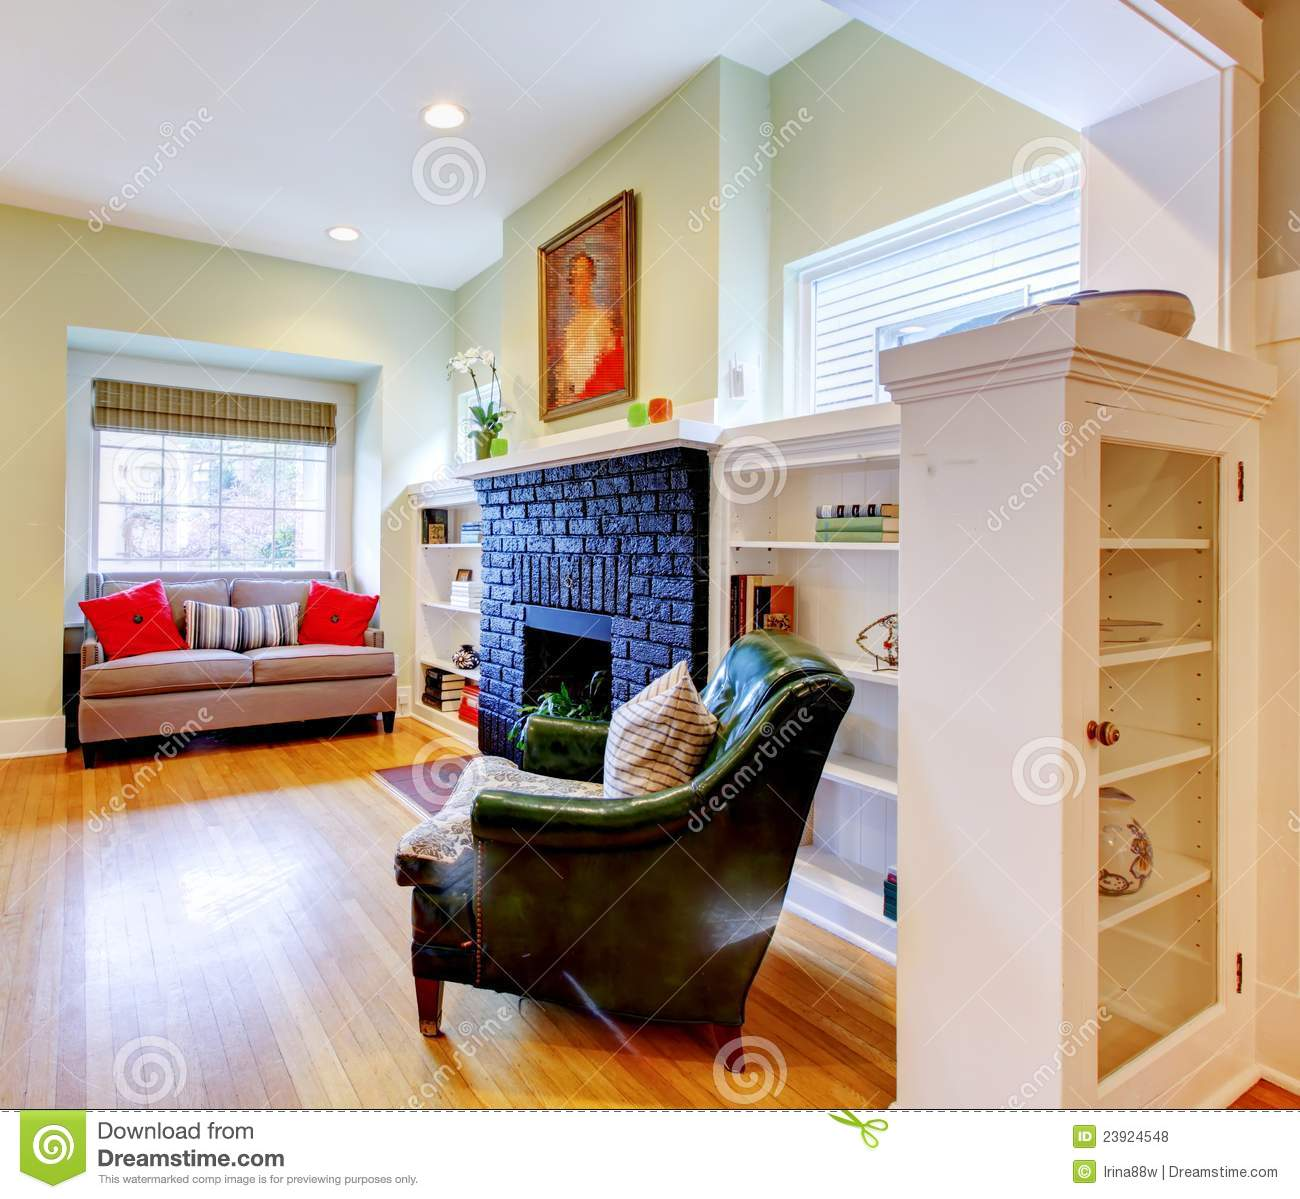 Classic small old house living room interior royalty free for Old house classics